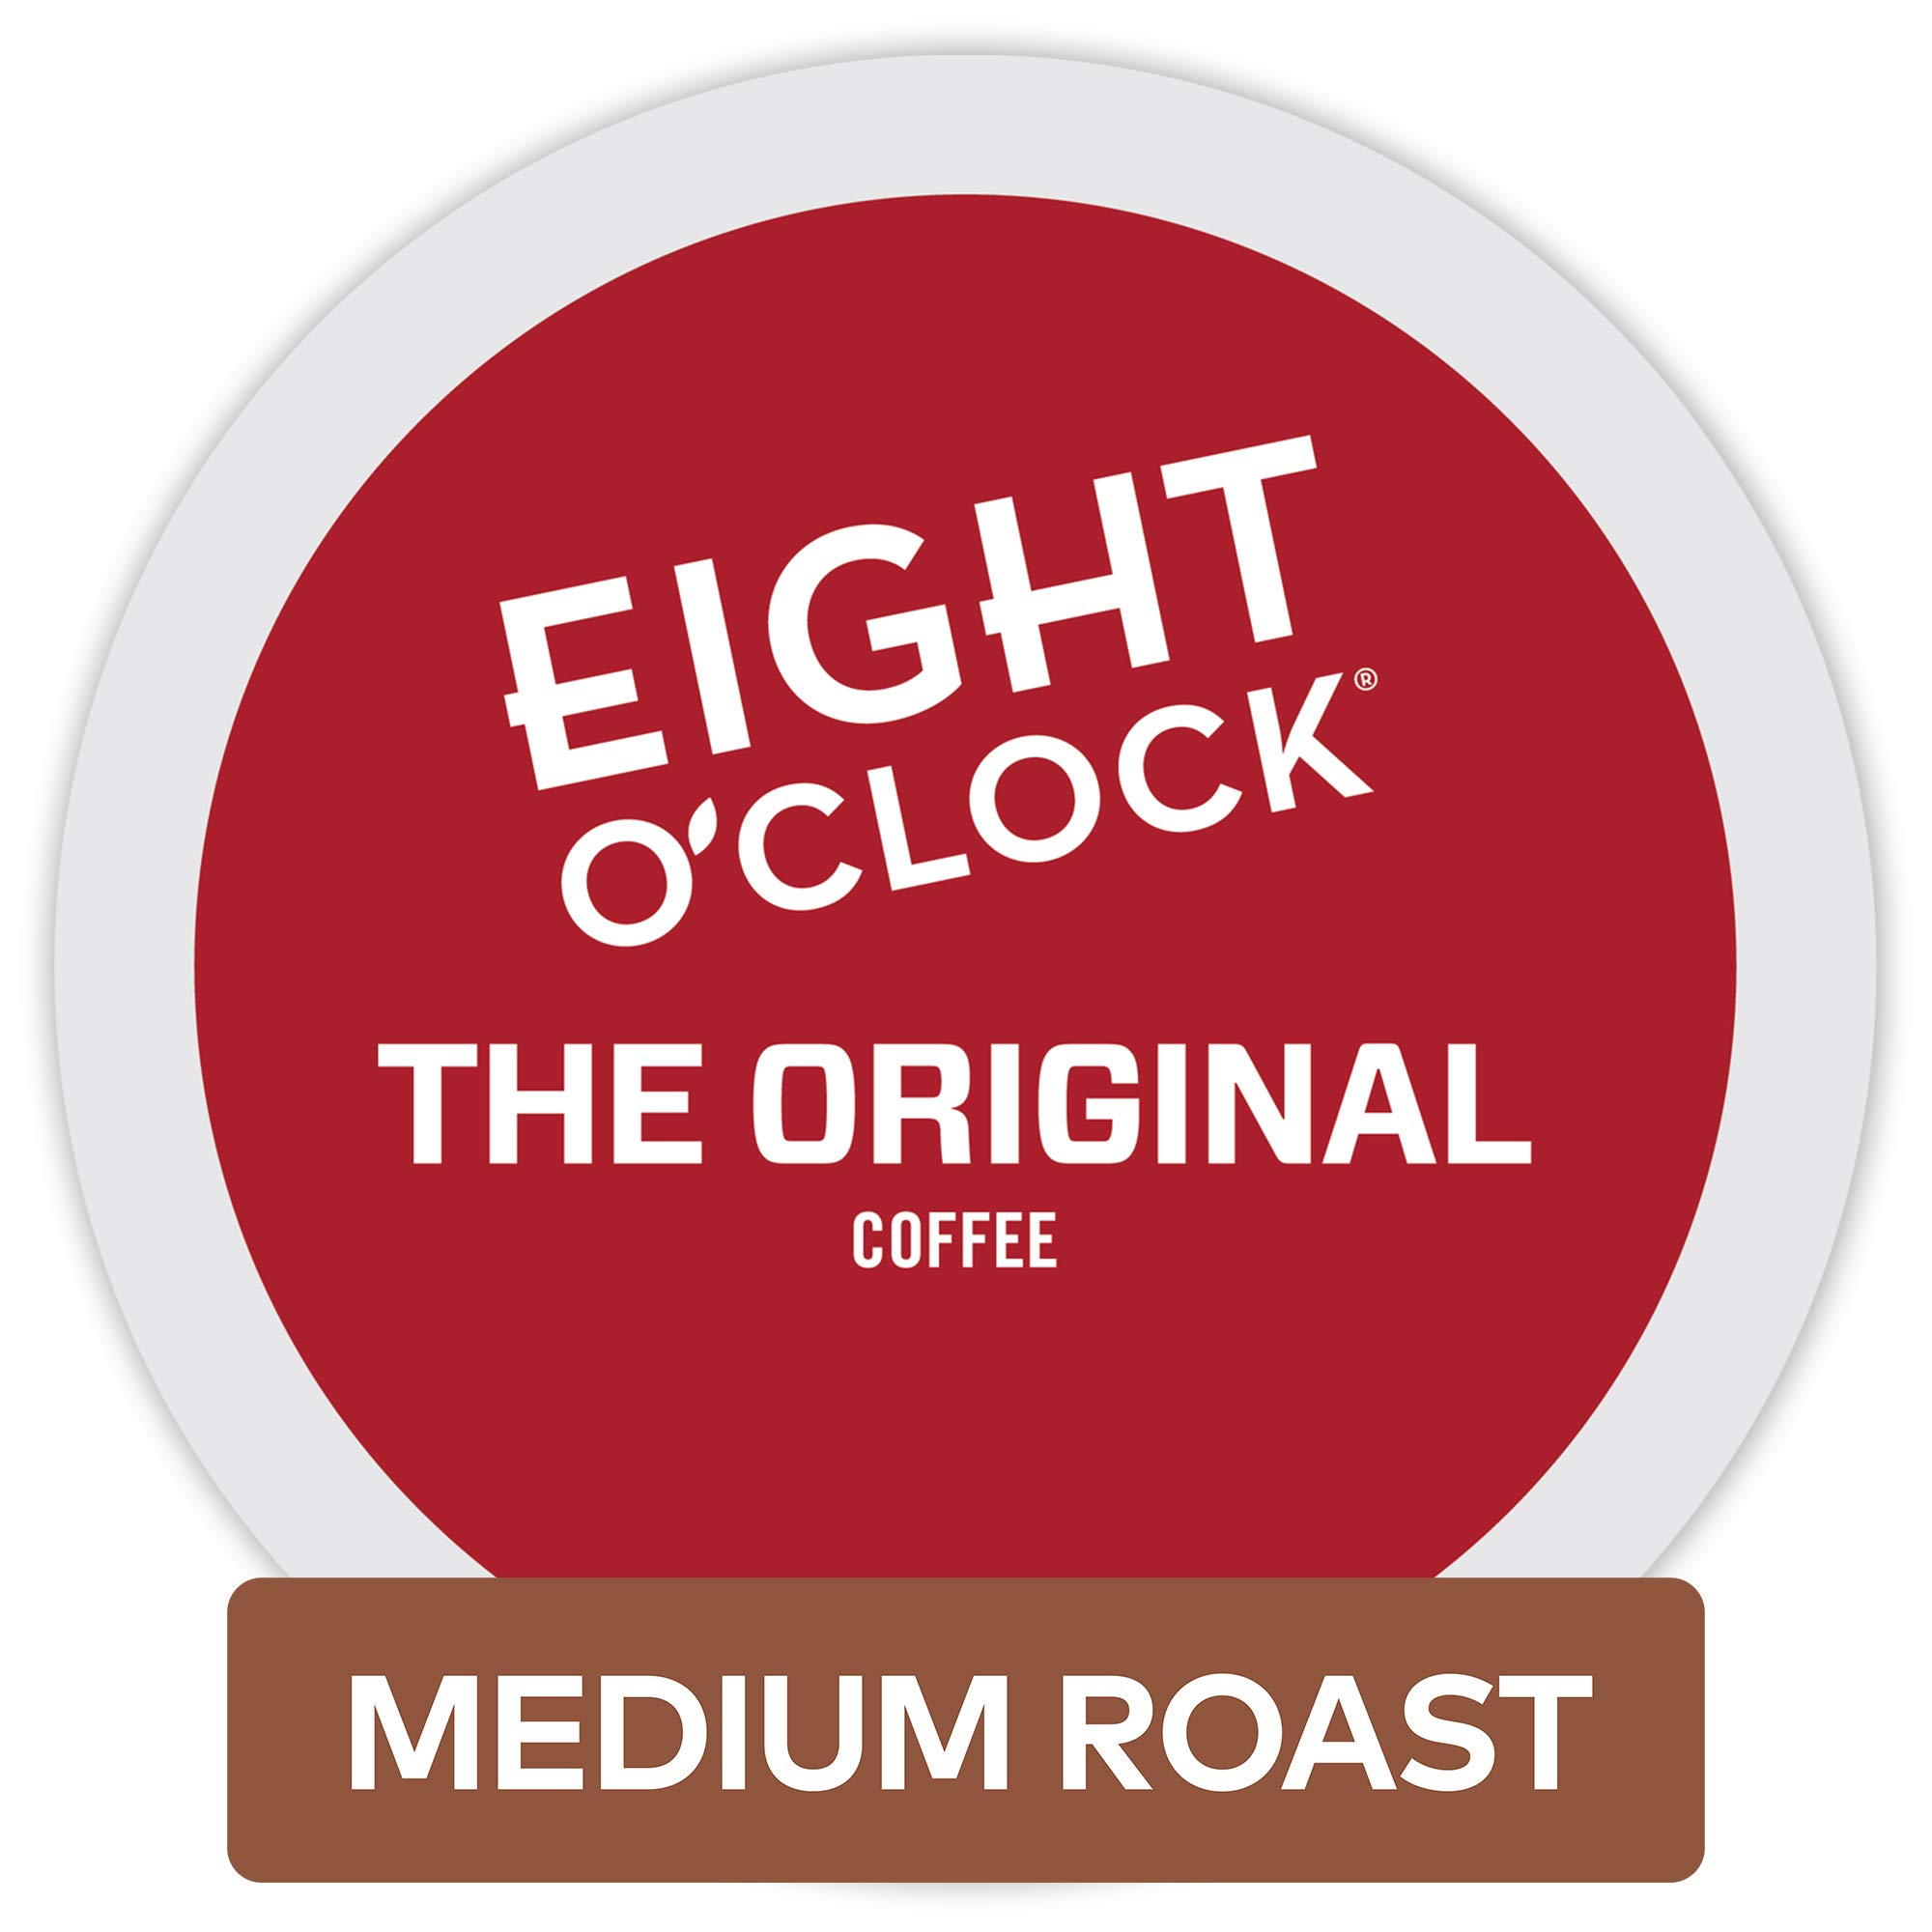 Eight O Clock Coffee The Original K-Cup for Keurig Brewers, 96 Count by 8 O'Clock